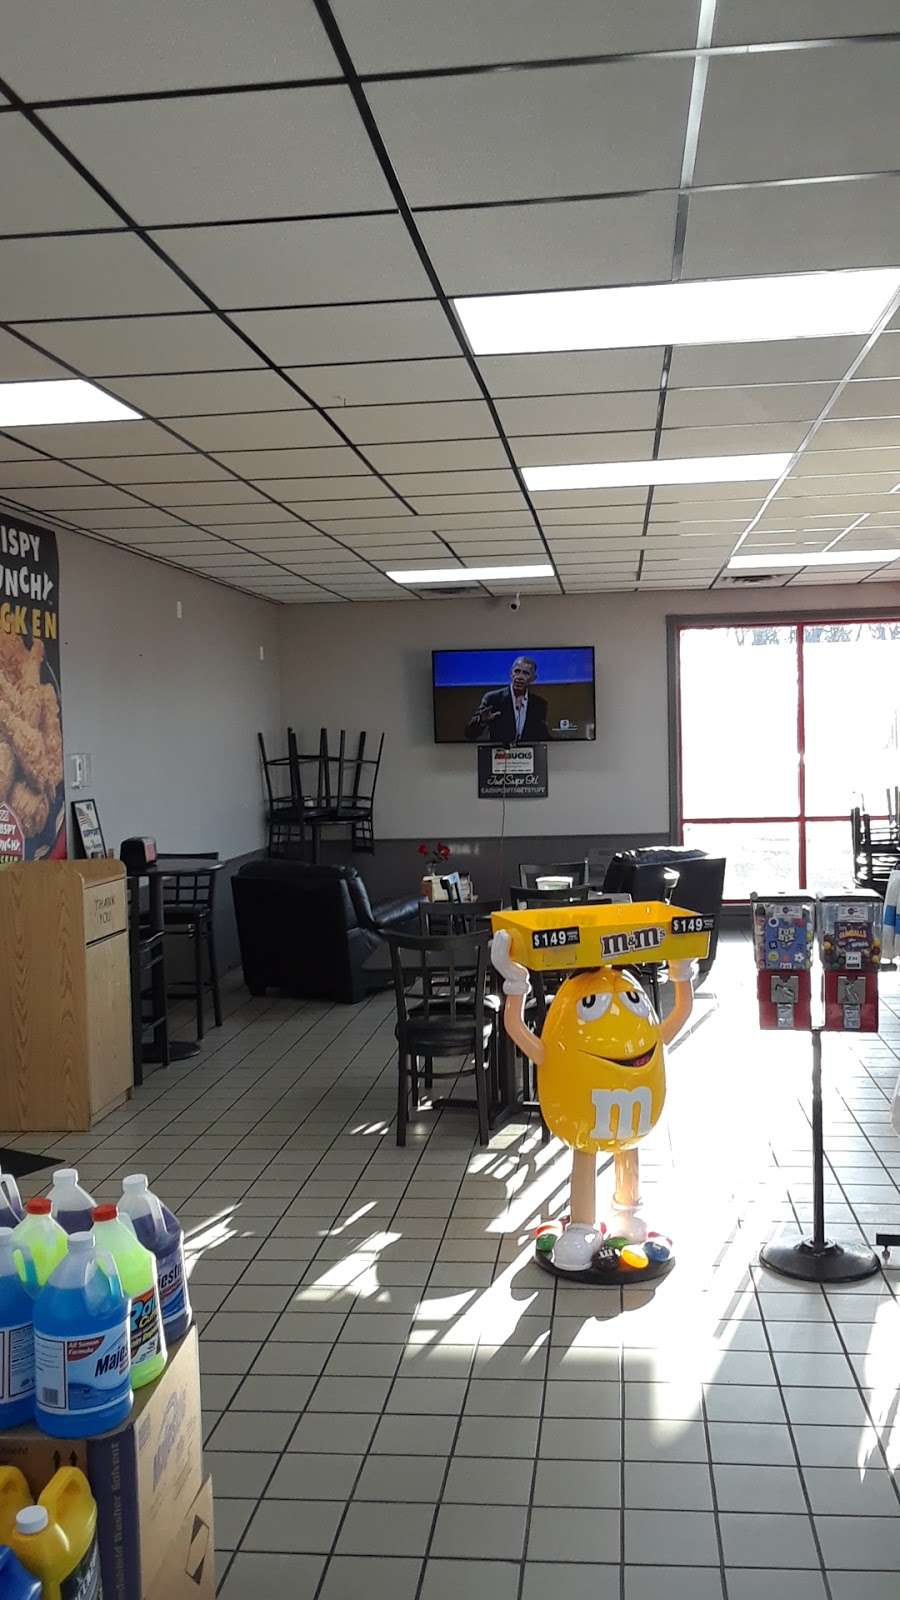 HANKS TRUCK STOP - gas station  | Photo 7 of 10 | Address: 1799 US-30, Hanna, IN 46340, USA | Phone: (219) 797-2244